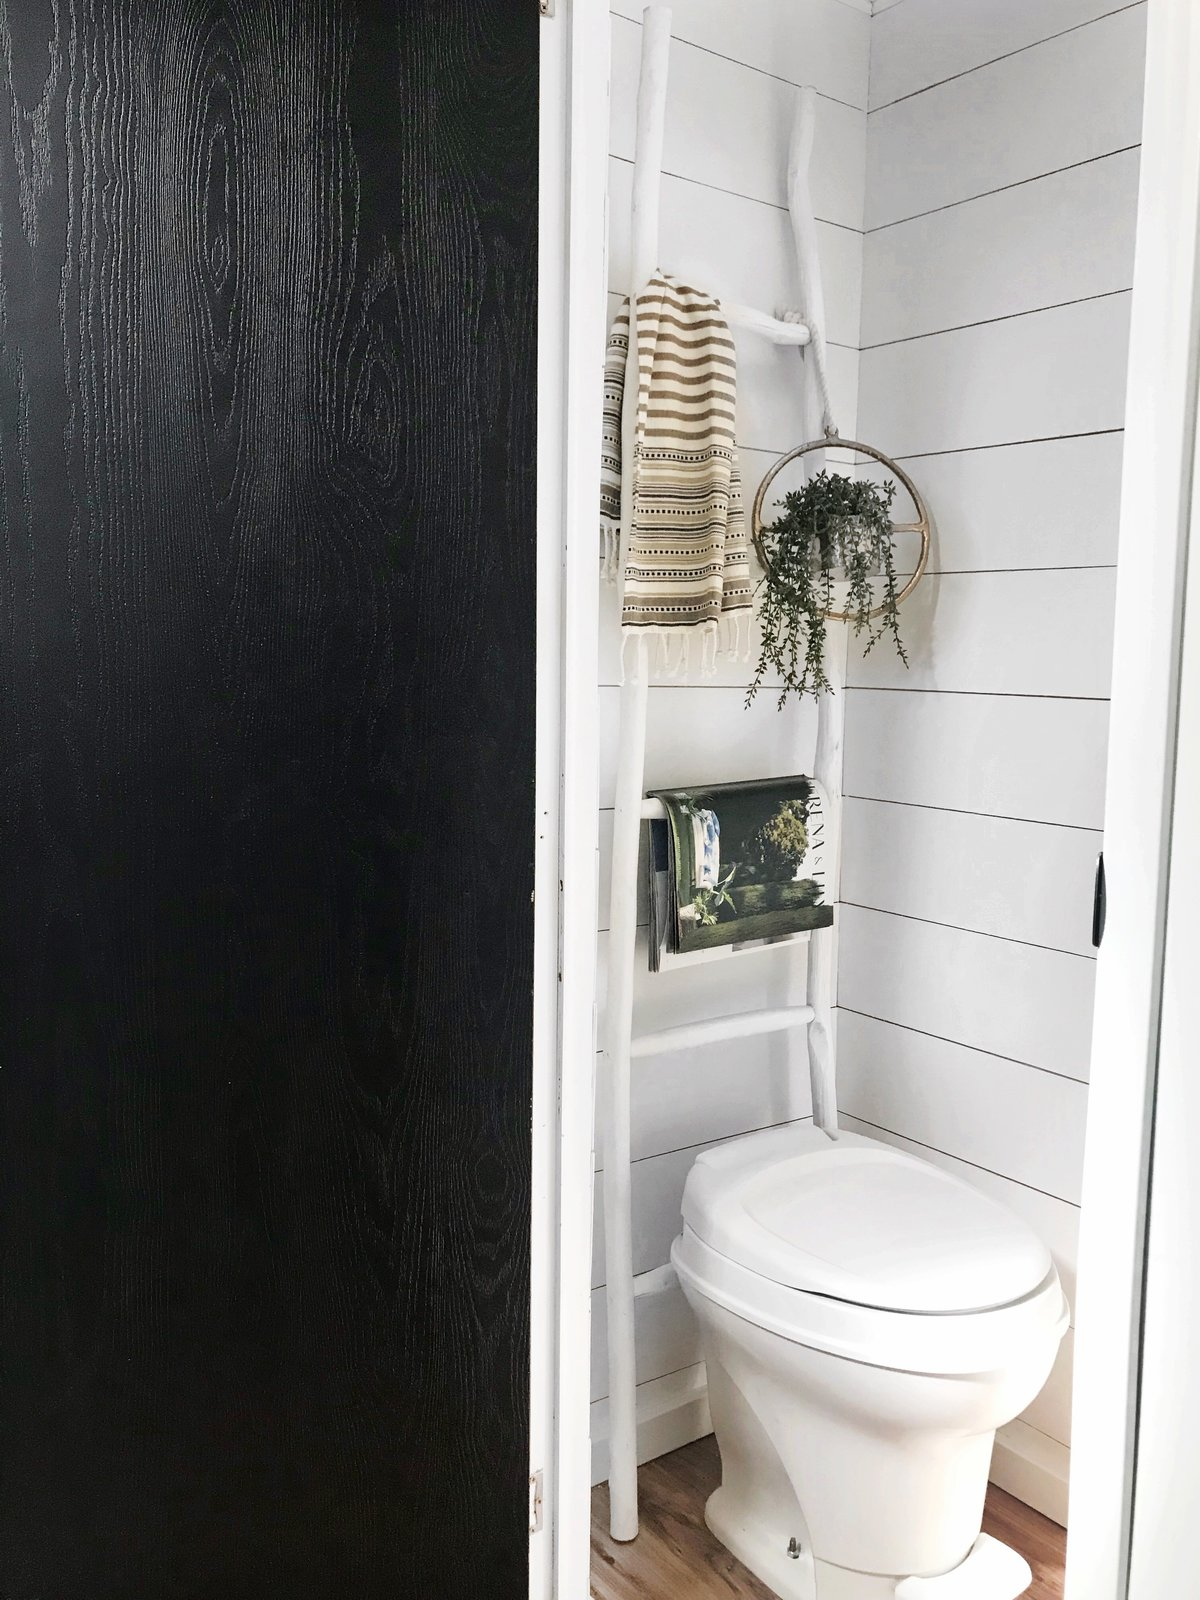 Bath Room and One Piece Toilet The walls of the bathroom were painted white.  Photo 14 of 16 in Hit the Road With This Chic Camper on Sale For $28K